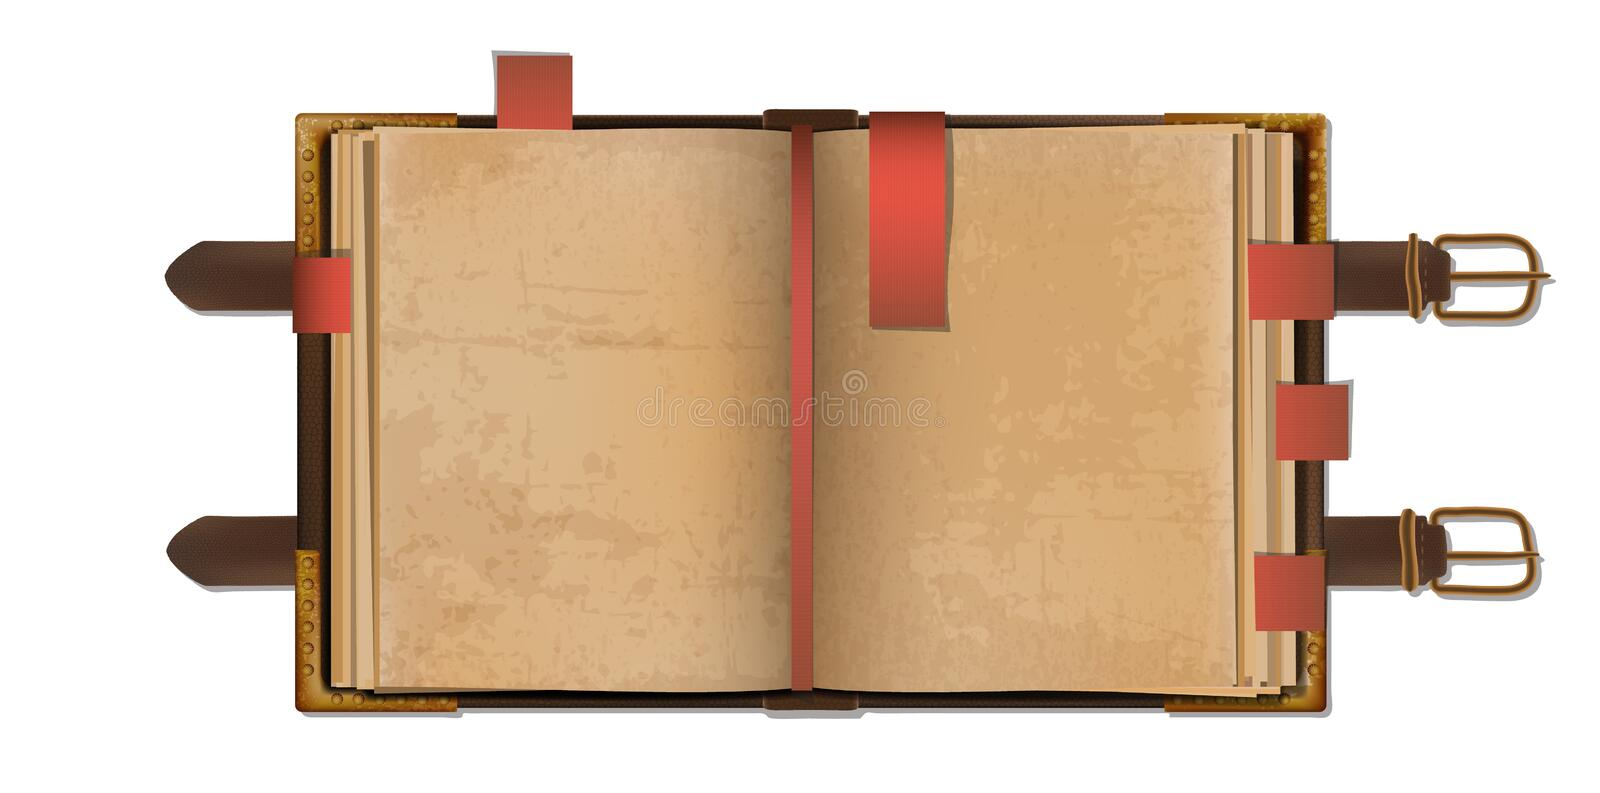 Old book. Old open blank book with bookmarks in a leather cover with metal clasps. EPS10 vector stock illustration